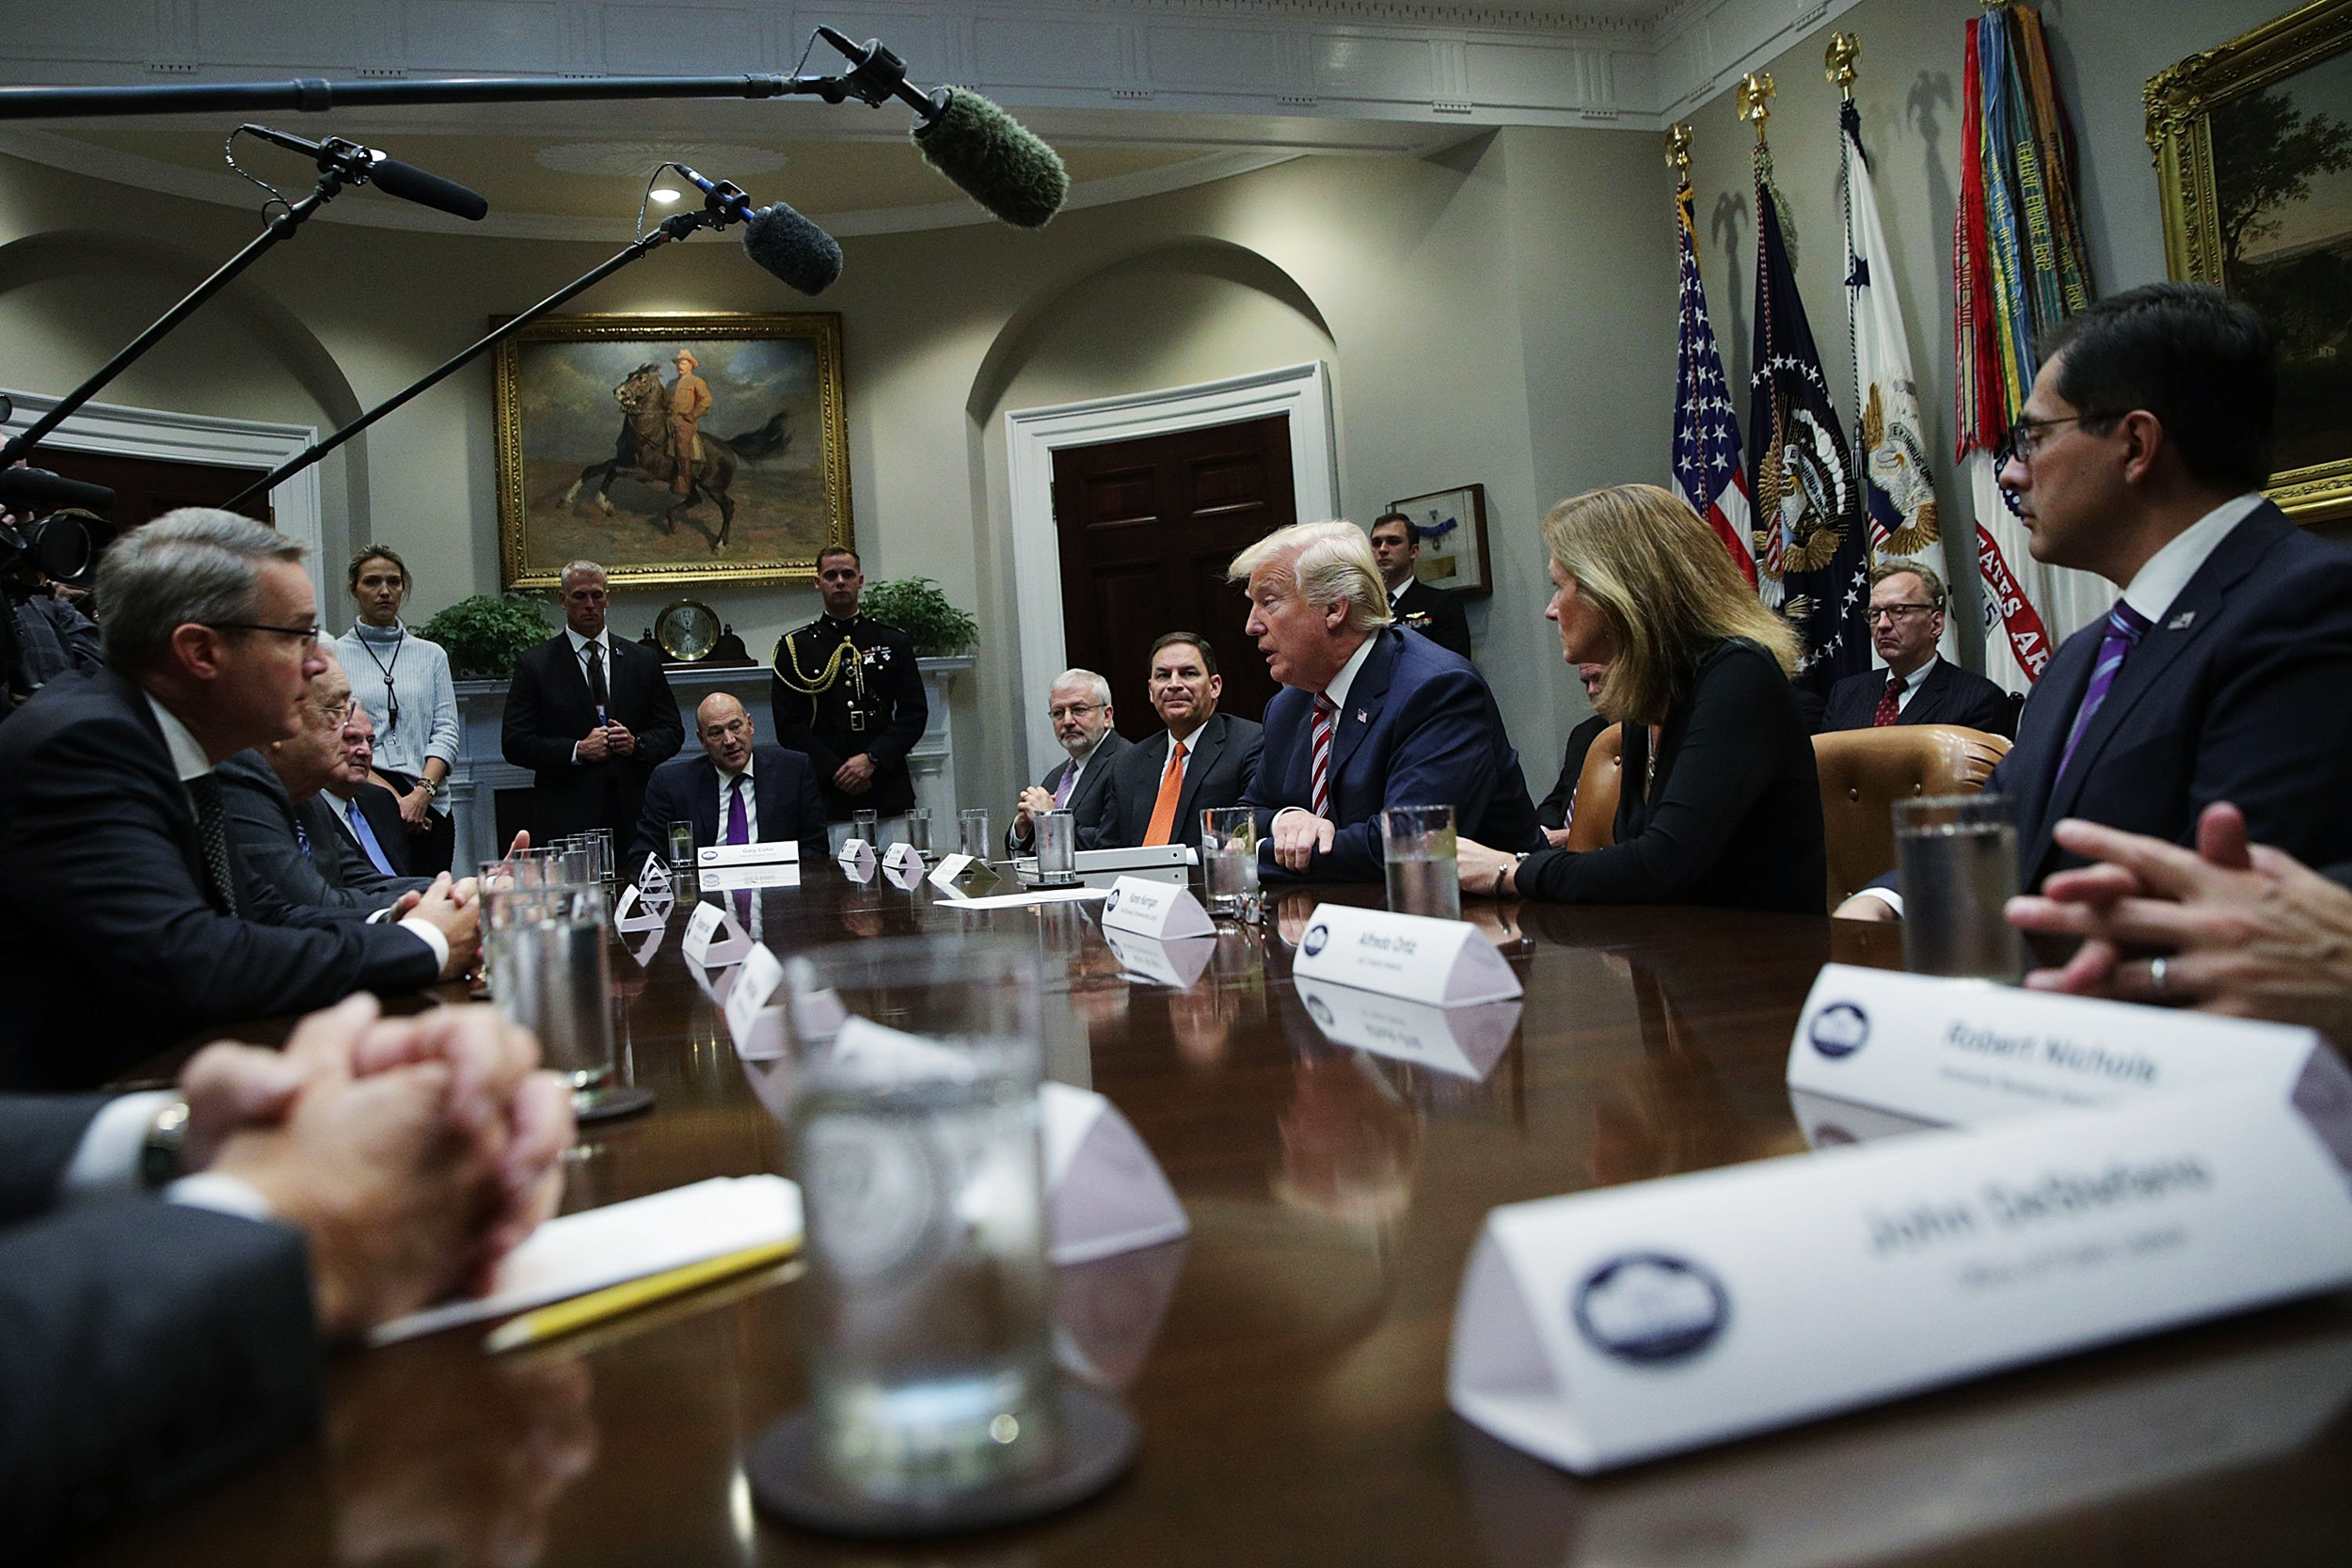 Image: Trump speaks to business leaders about tax reform